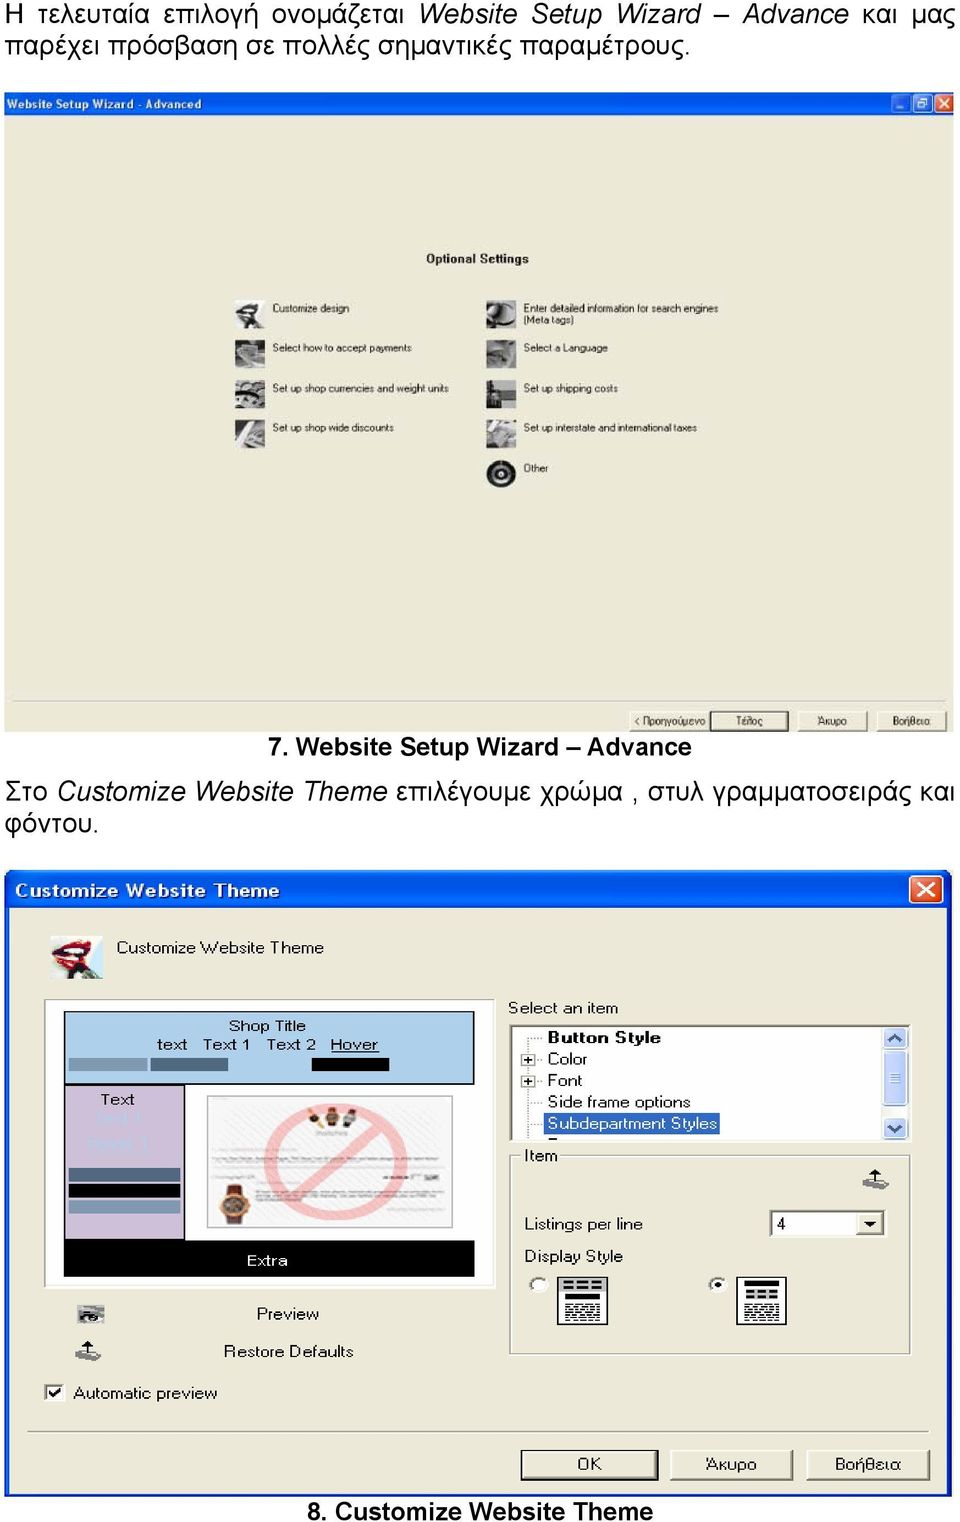 Website Setup Wizard Advance Στο Customize Website Theme